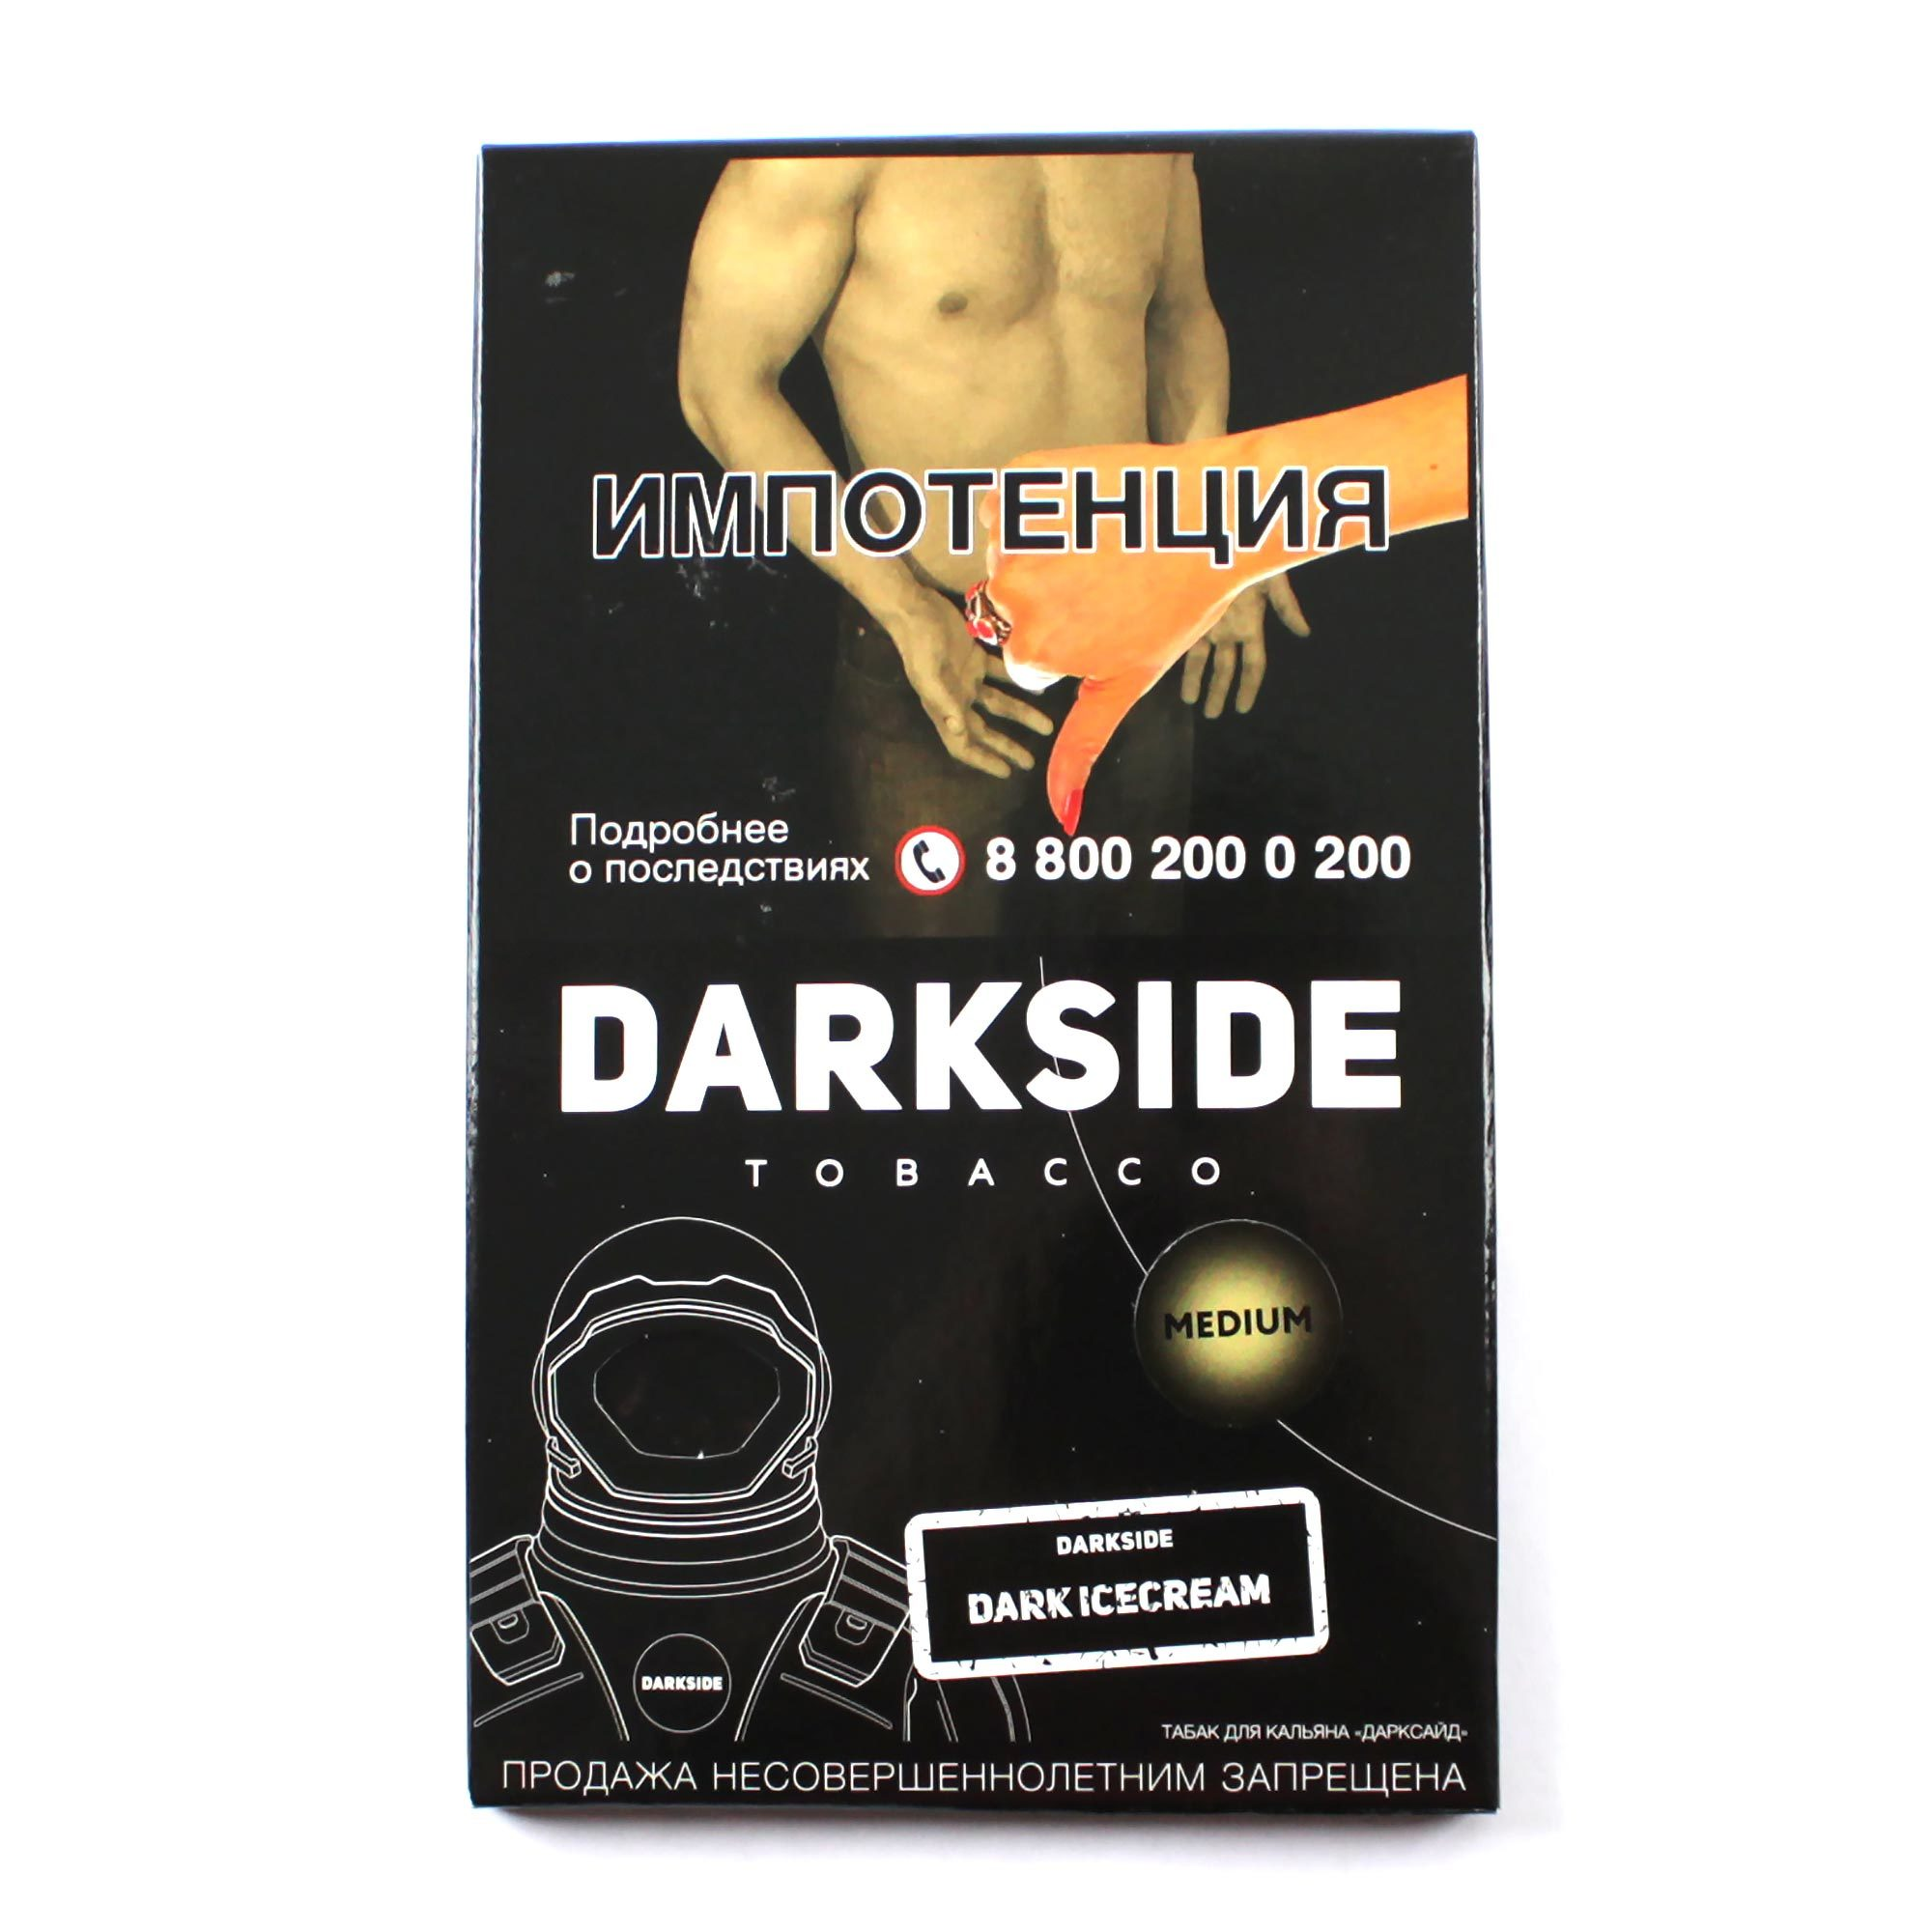 Табак для кальяна Dark Side Medium 100 гр Dark Icecream